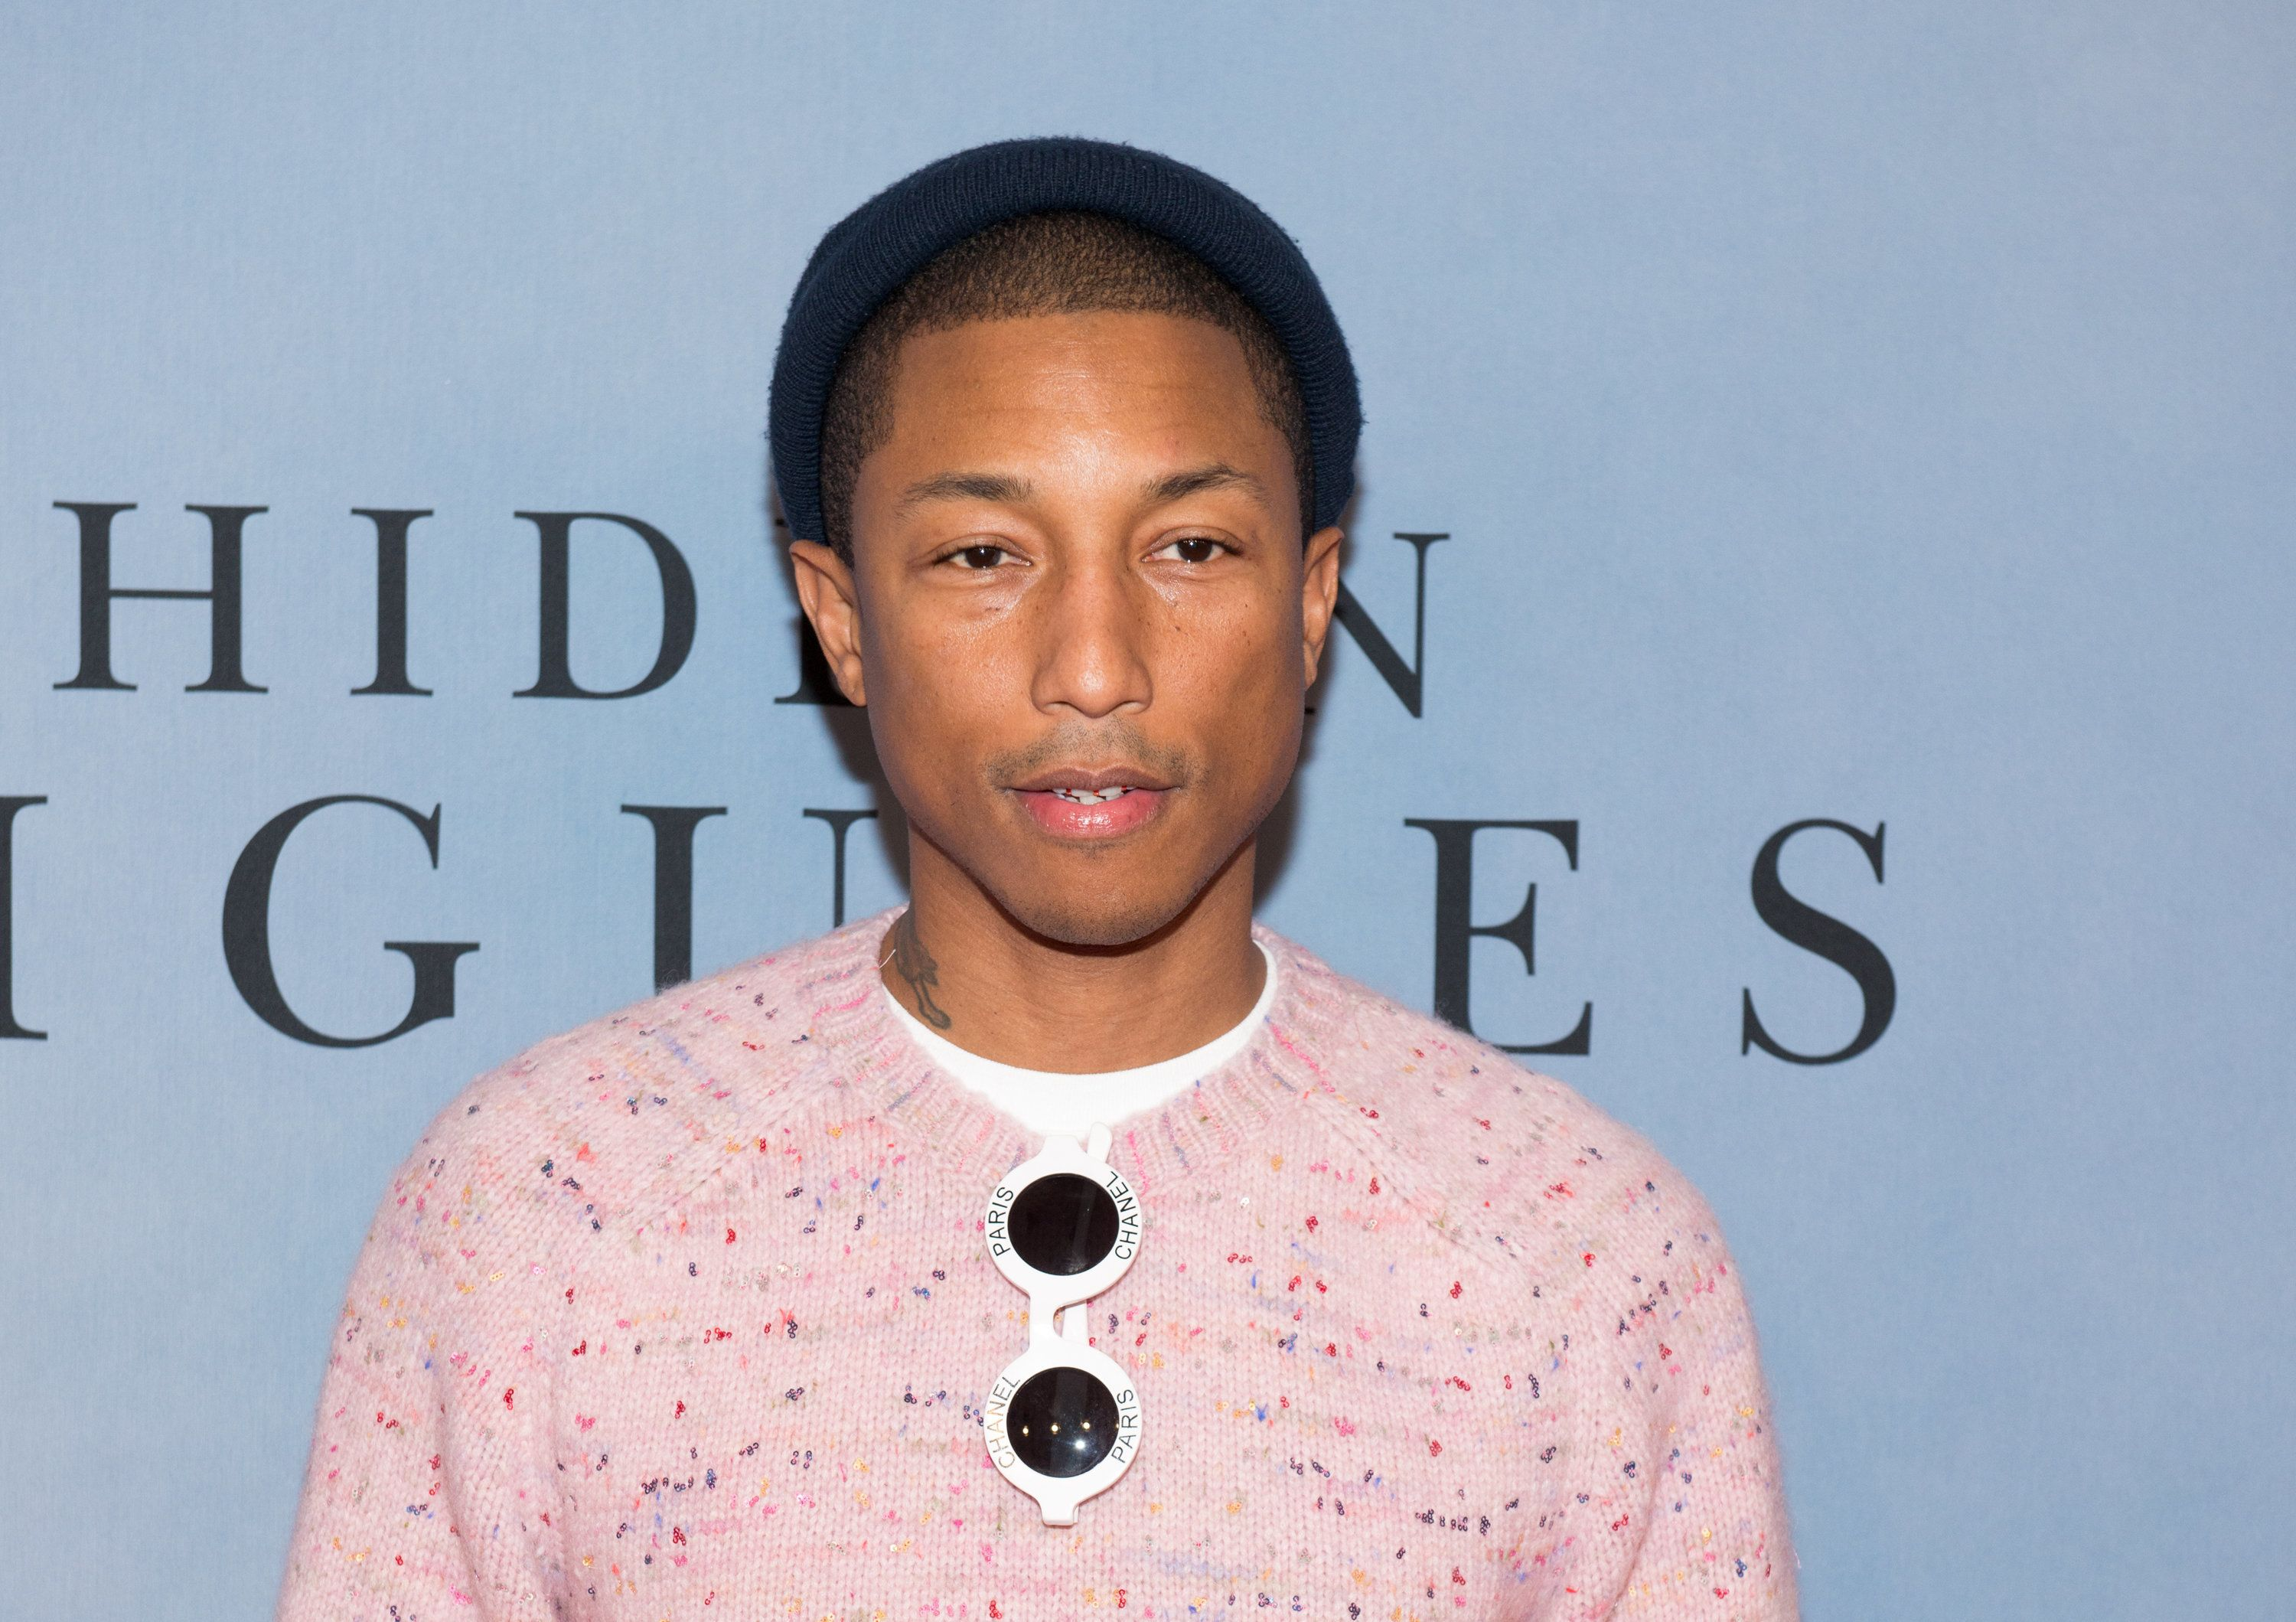 NEW YORK, NY - DECEMBER 10:  Singer Pharrell Williams attends the 'Hidden Figures' New York special screening on December 10, 2016 in New York City.  (Photo by Noam Galai/WireImage)